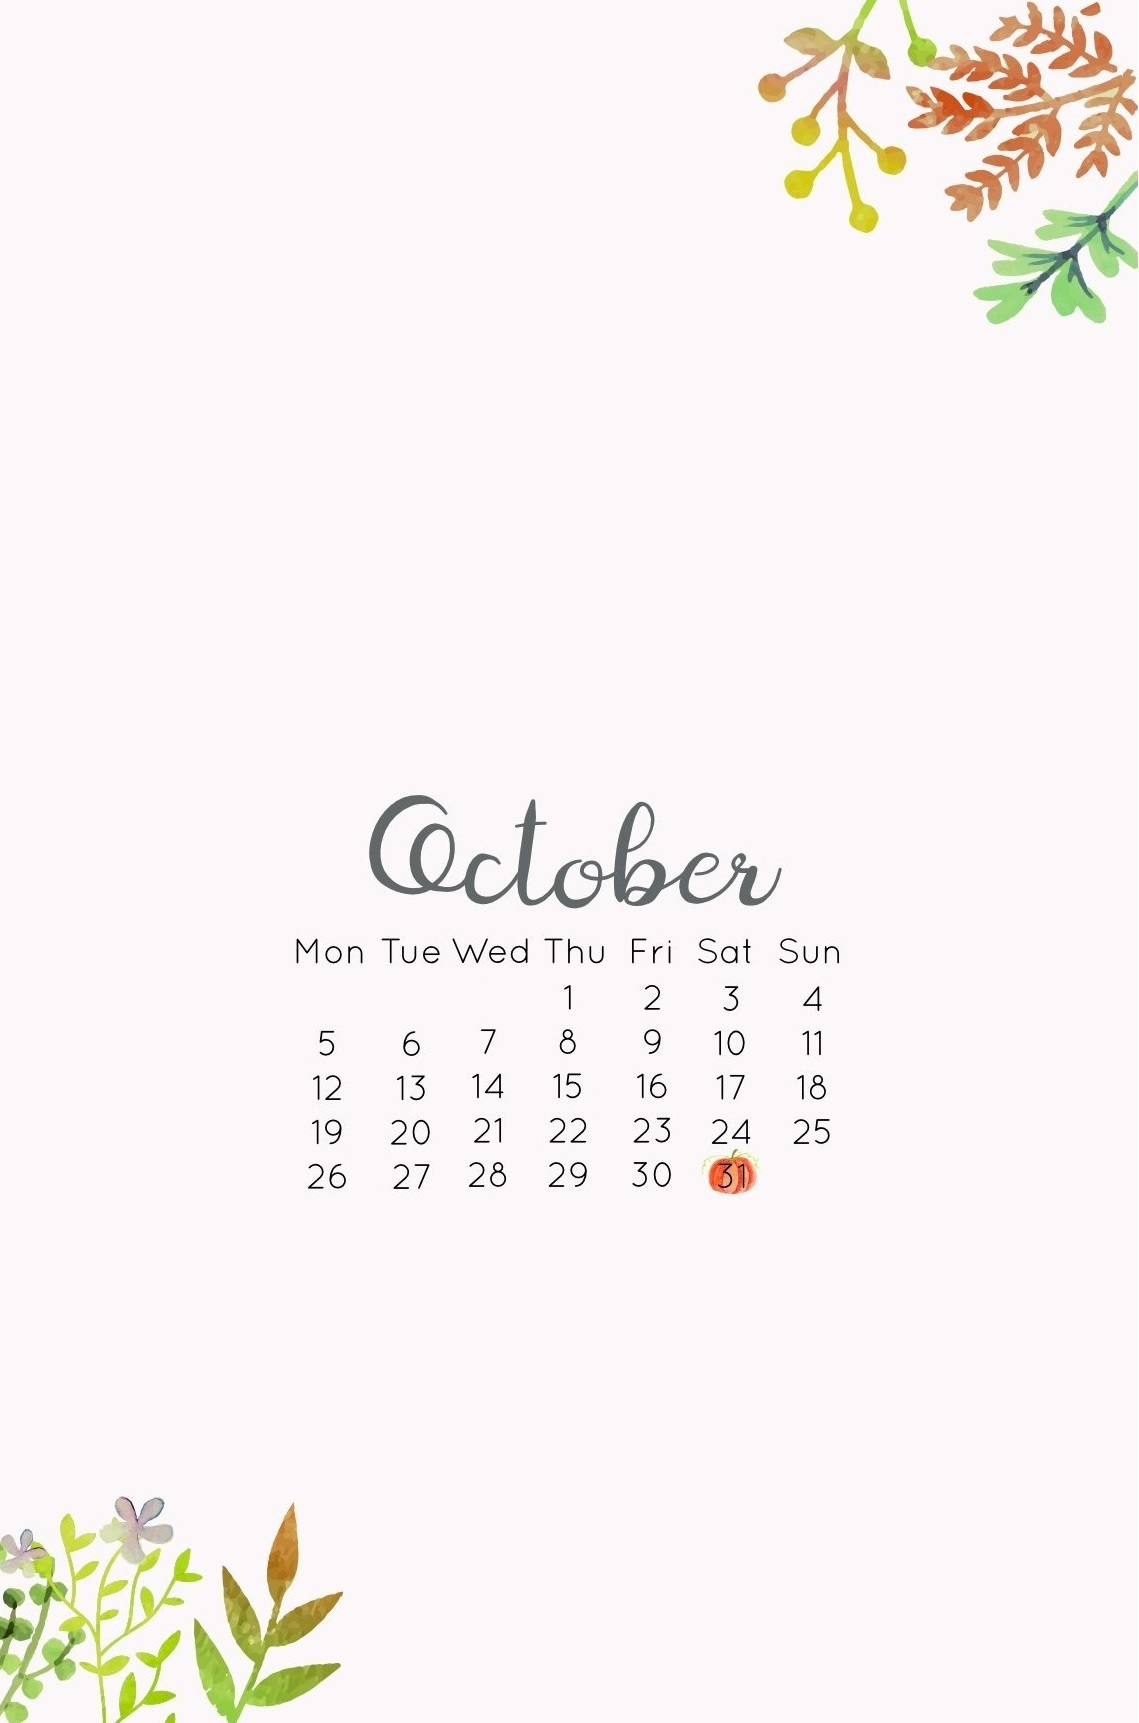 iPhone October 2020 Wallpaper